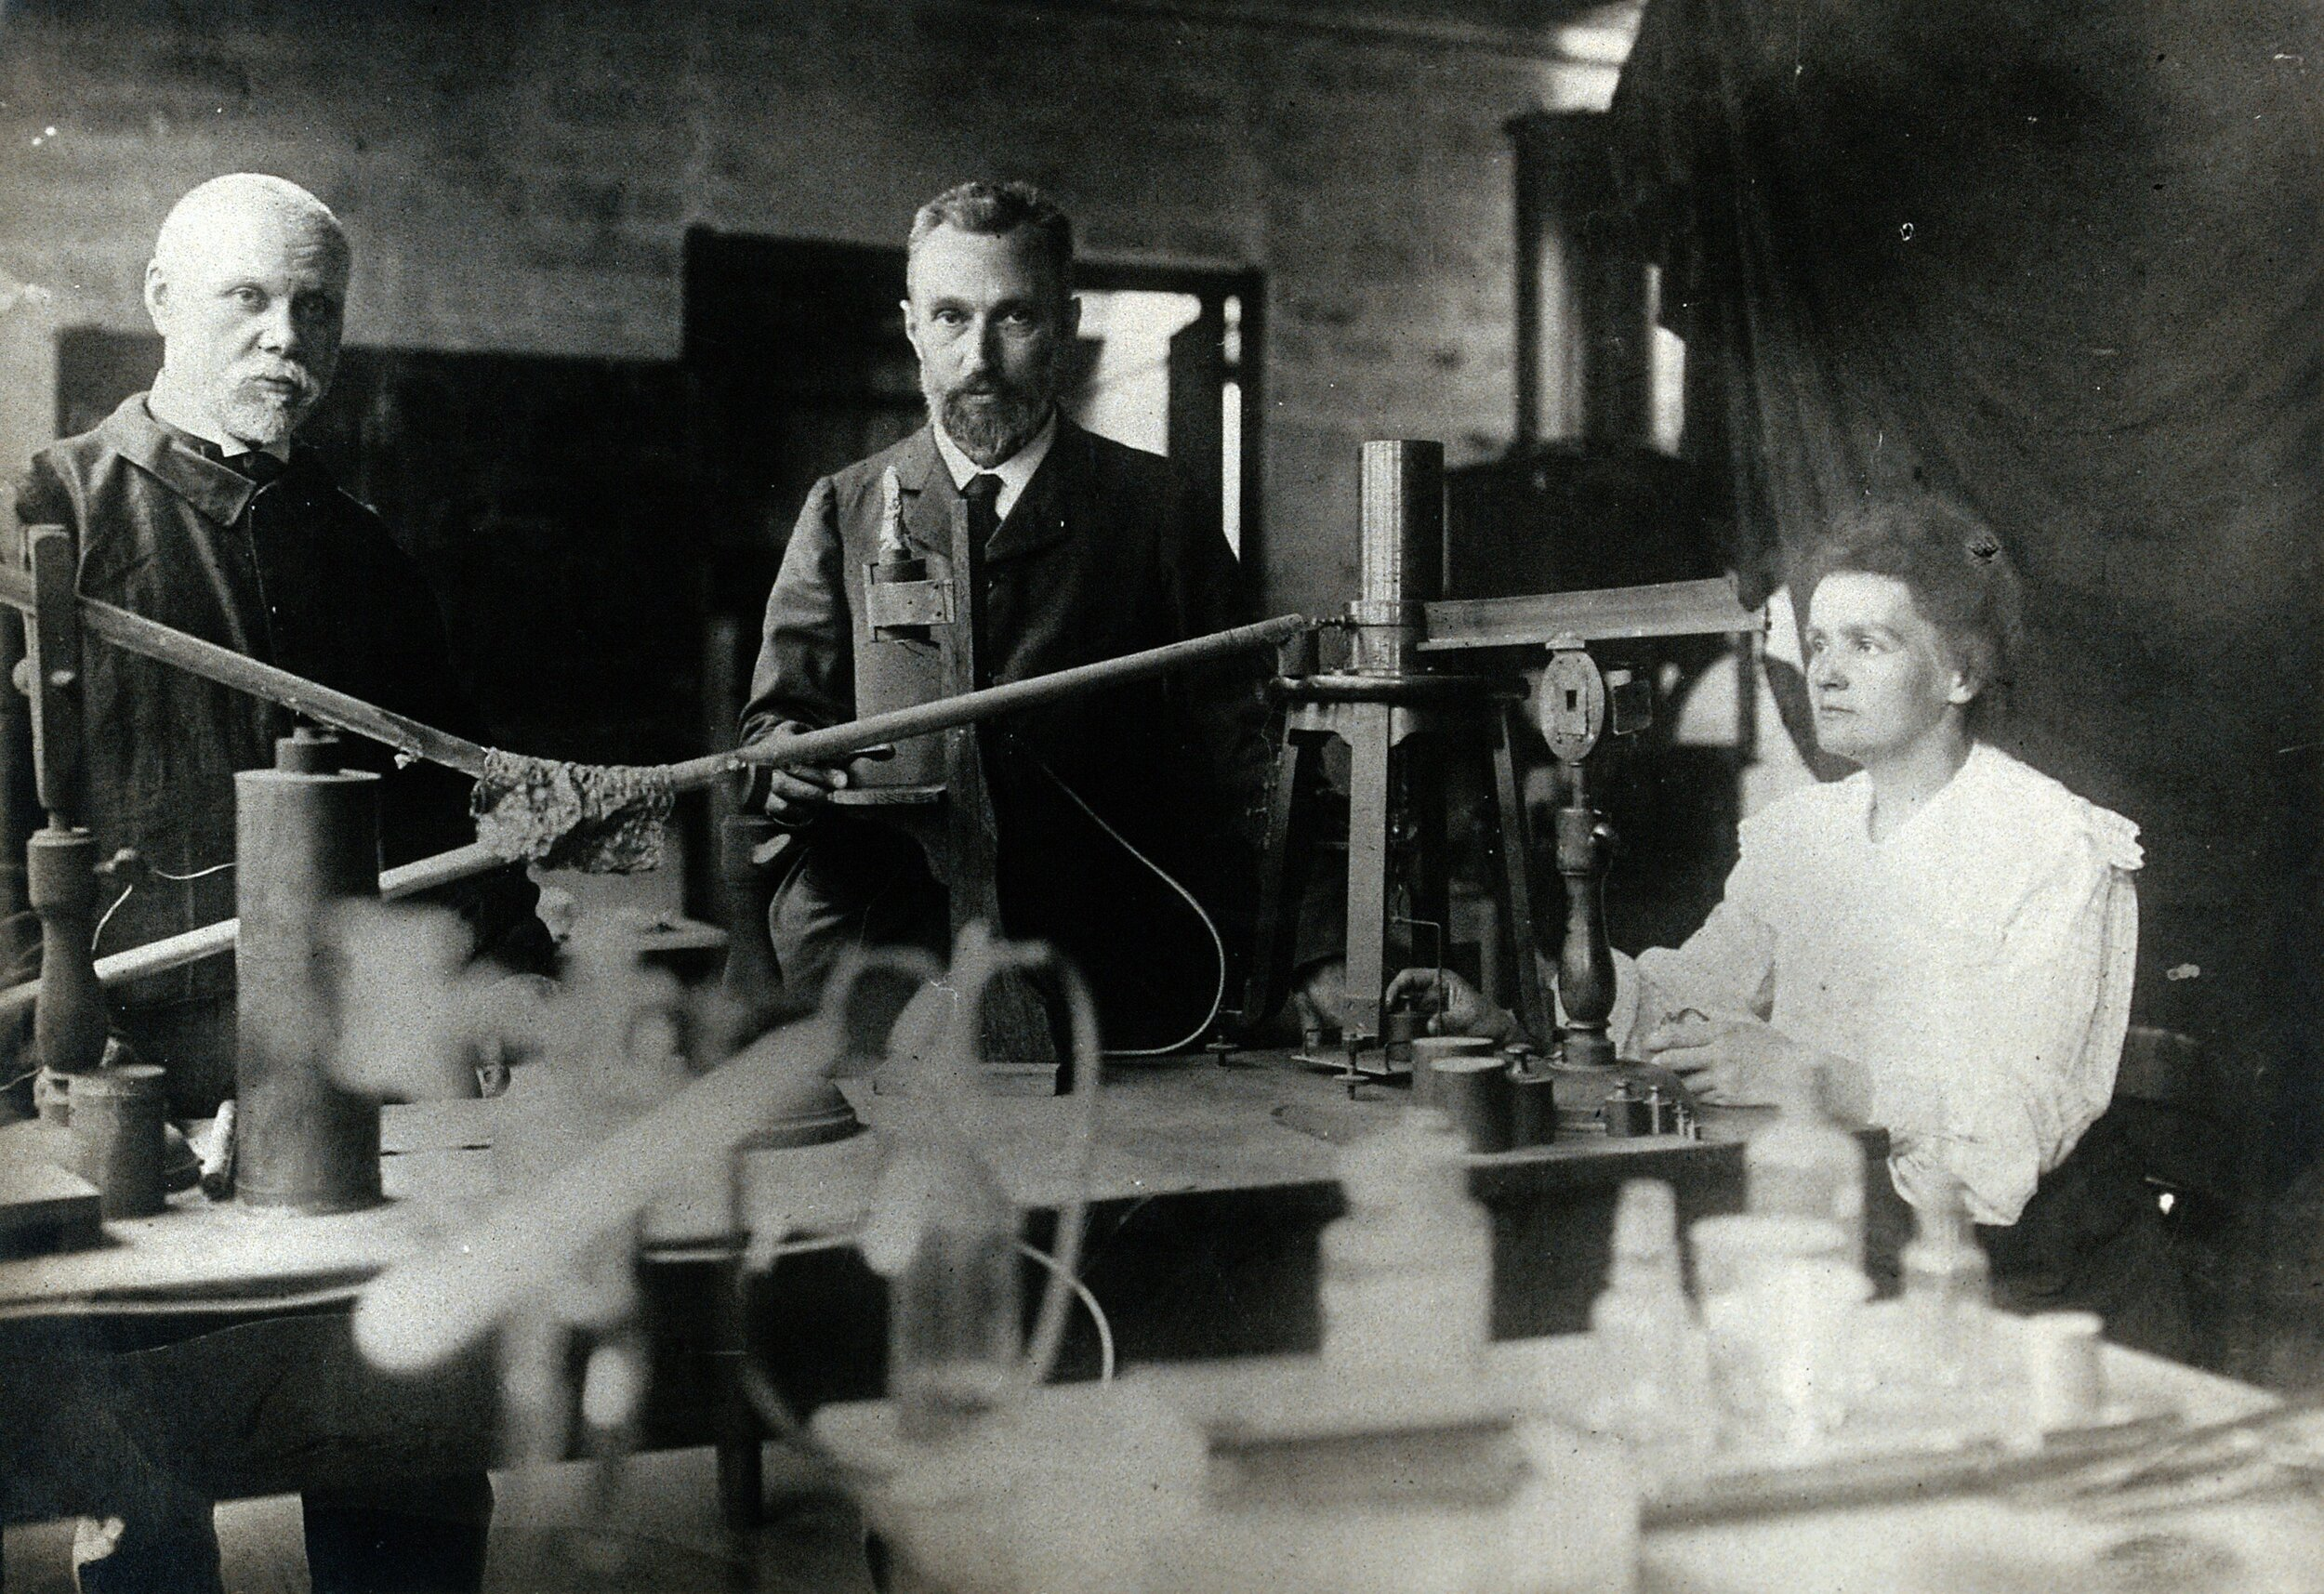 Marie Curie in the lab. Photo via WikiMedia